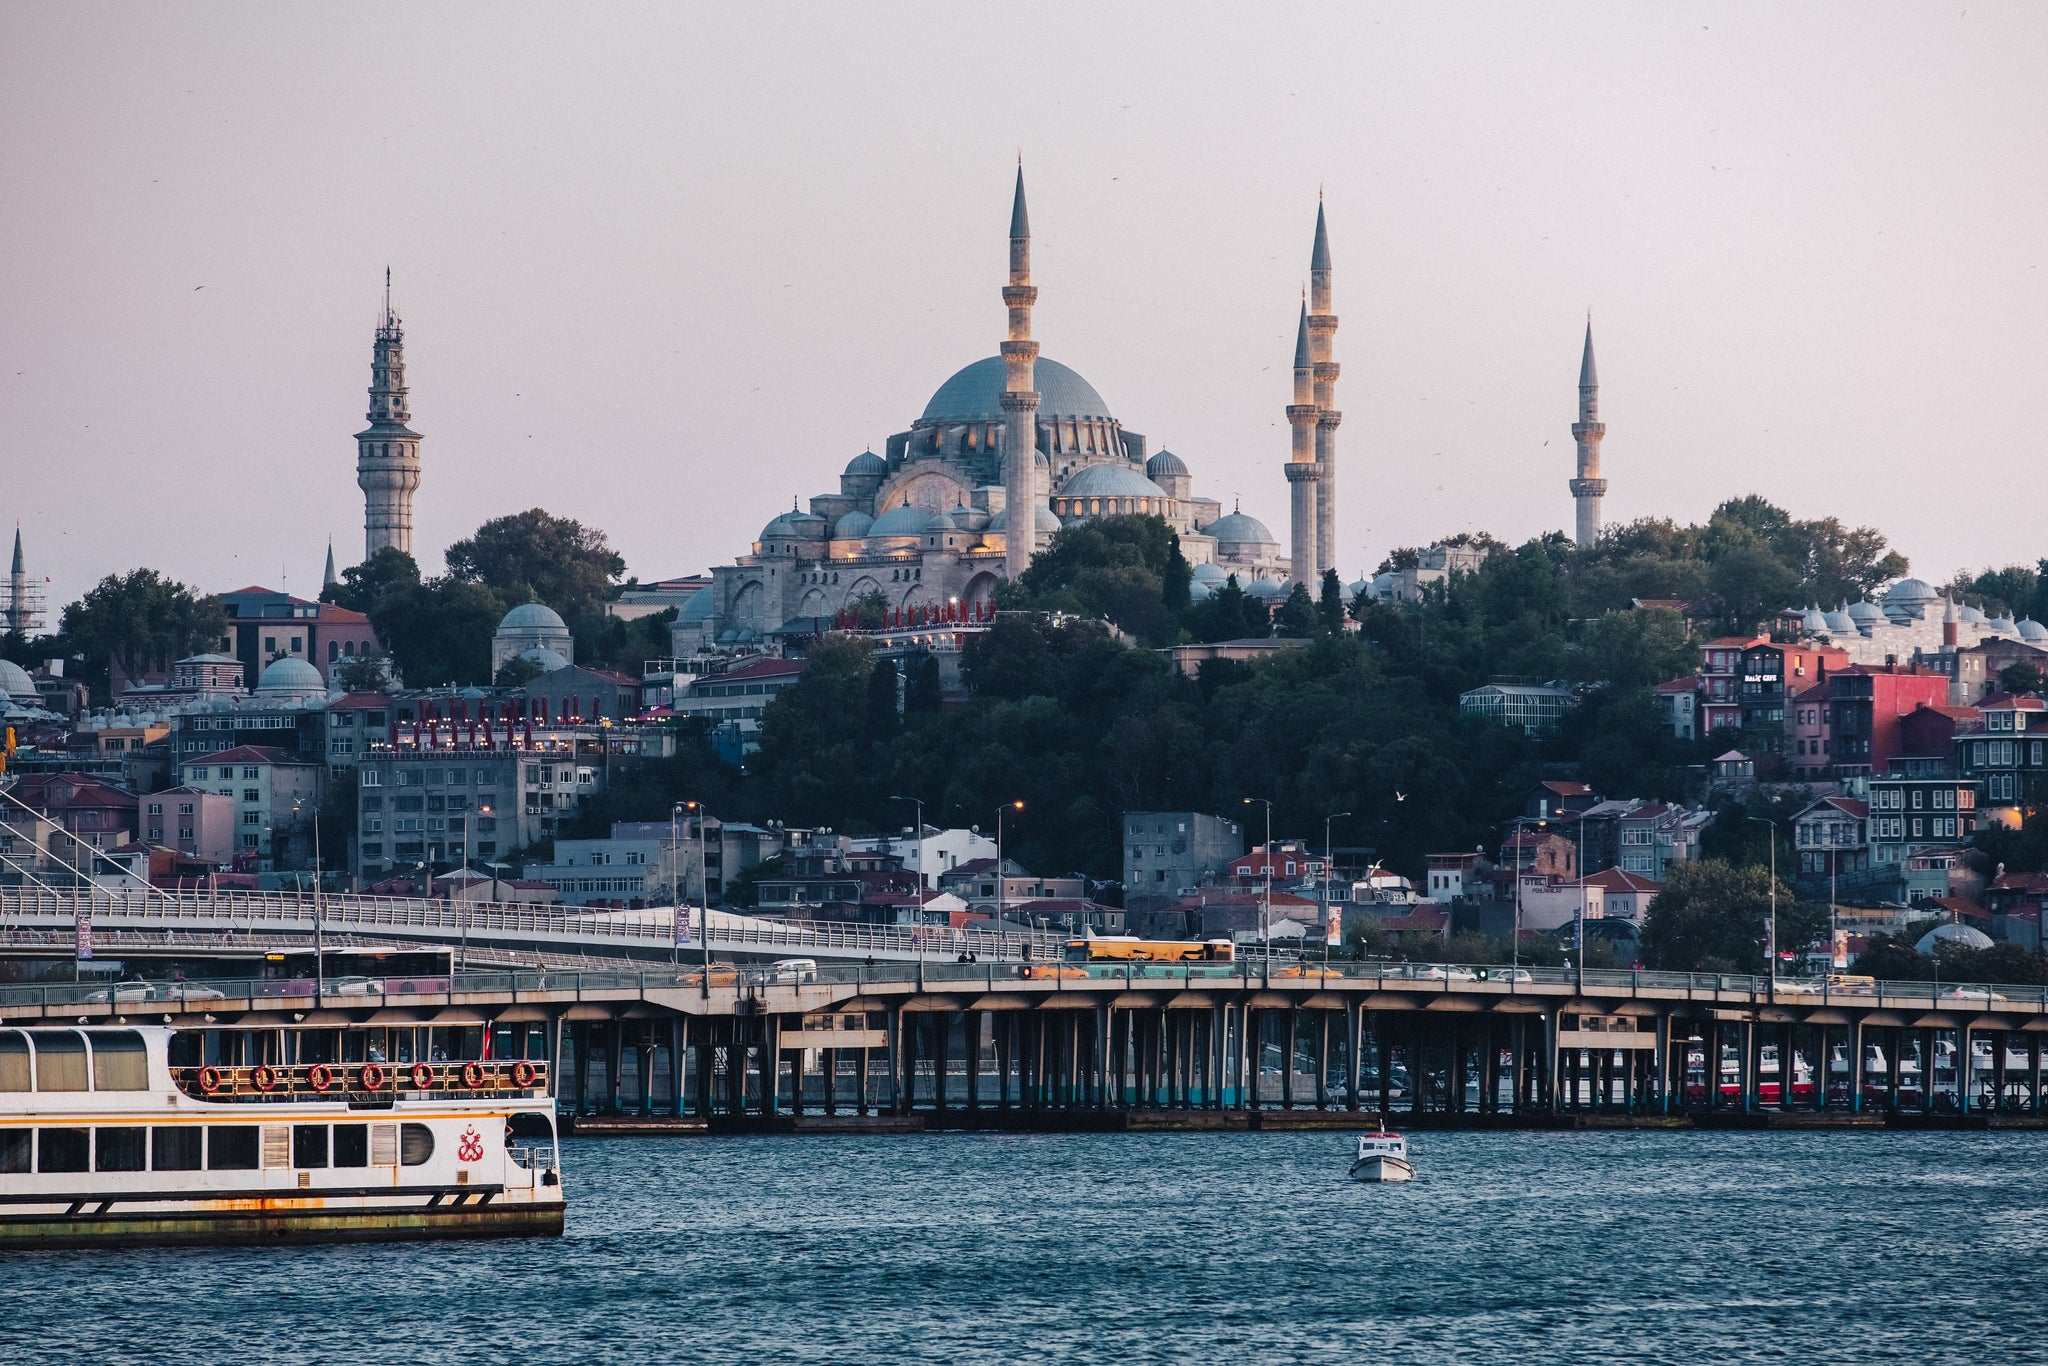 View from boat along Golden Horn, Istanbul, Turkey.